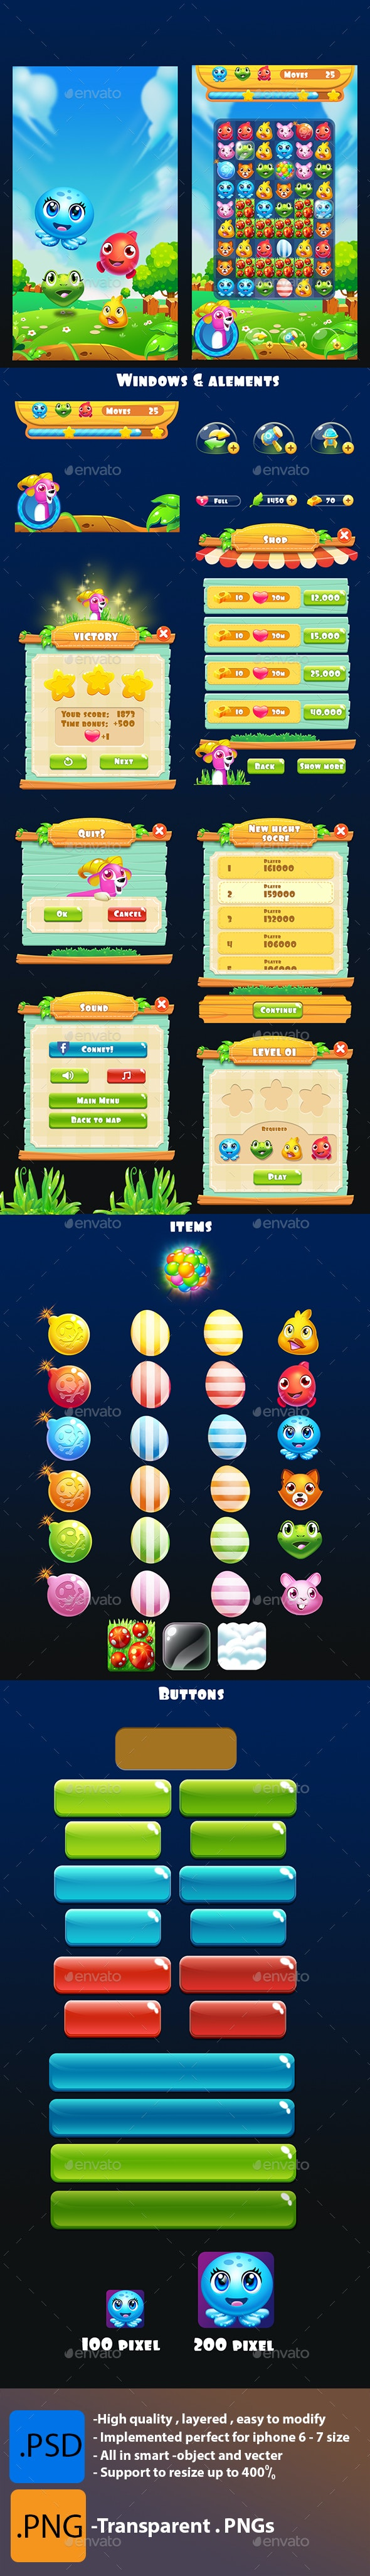 Pets Game - Full Assets - Game Kits Game Assets